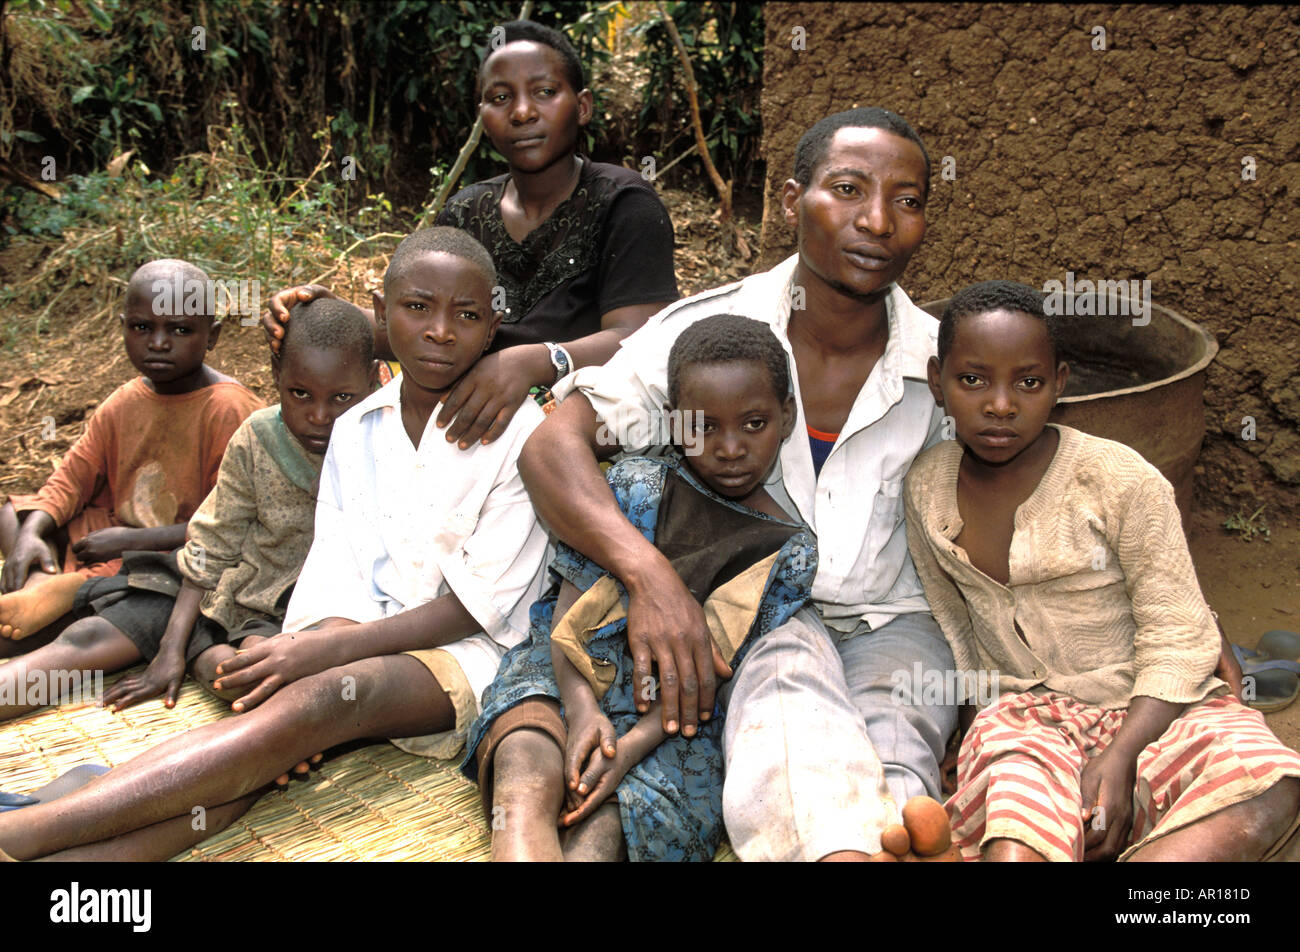 Rwandan genocide orphan Alfonse is mother and father to his younger siblings and his orphan cousins - Stock Image